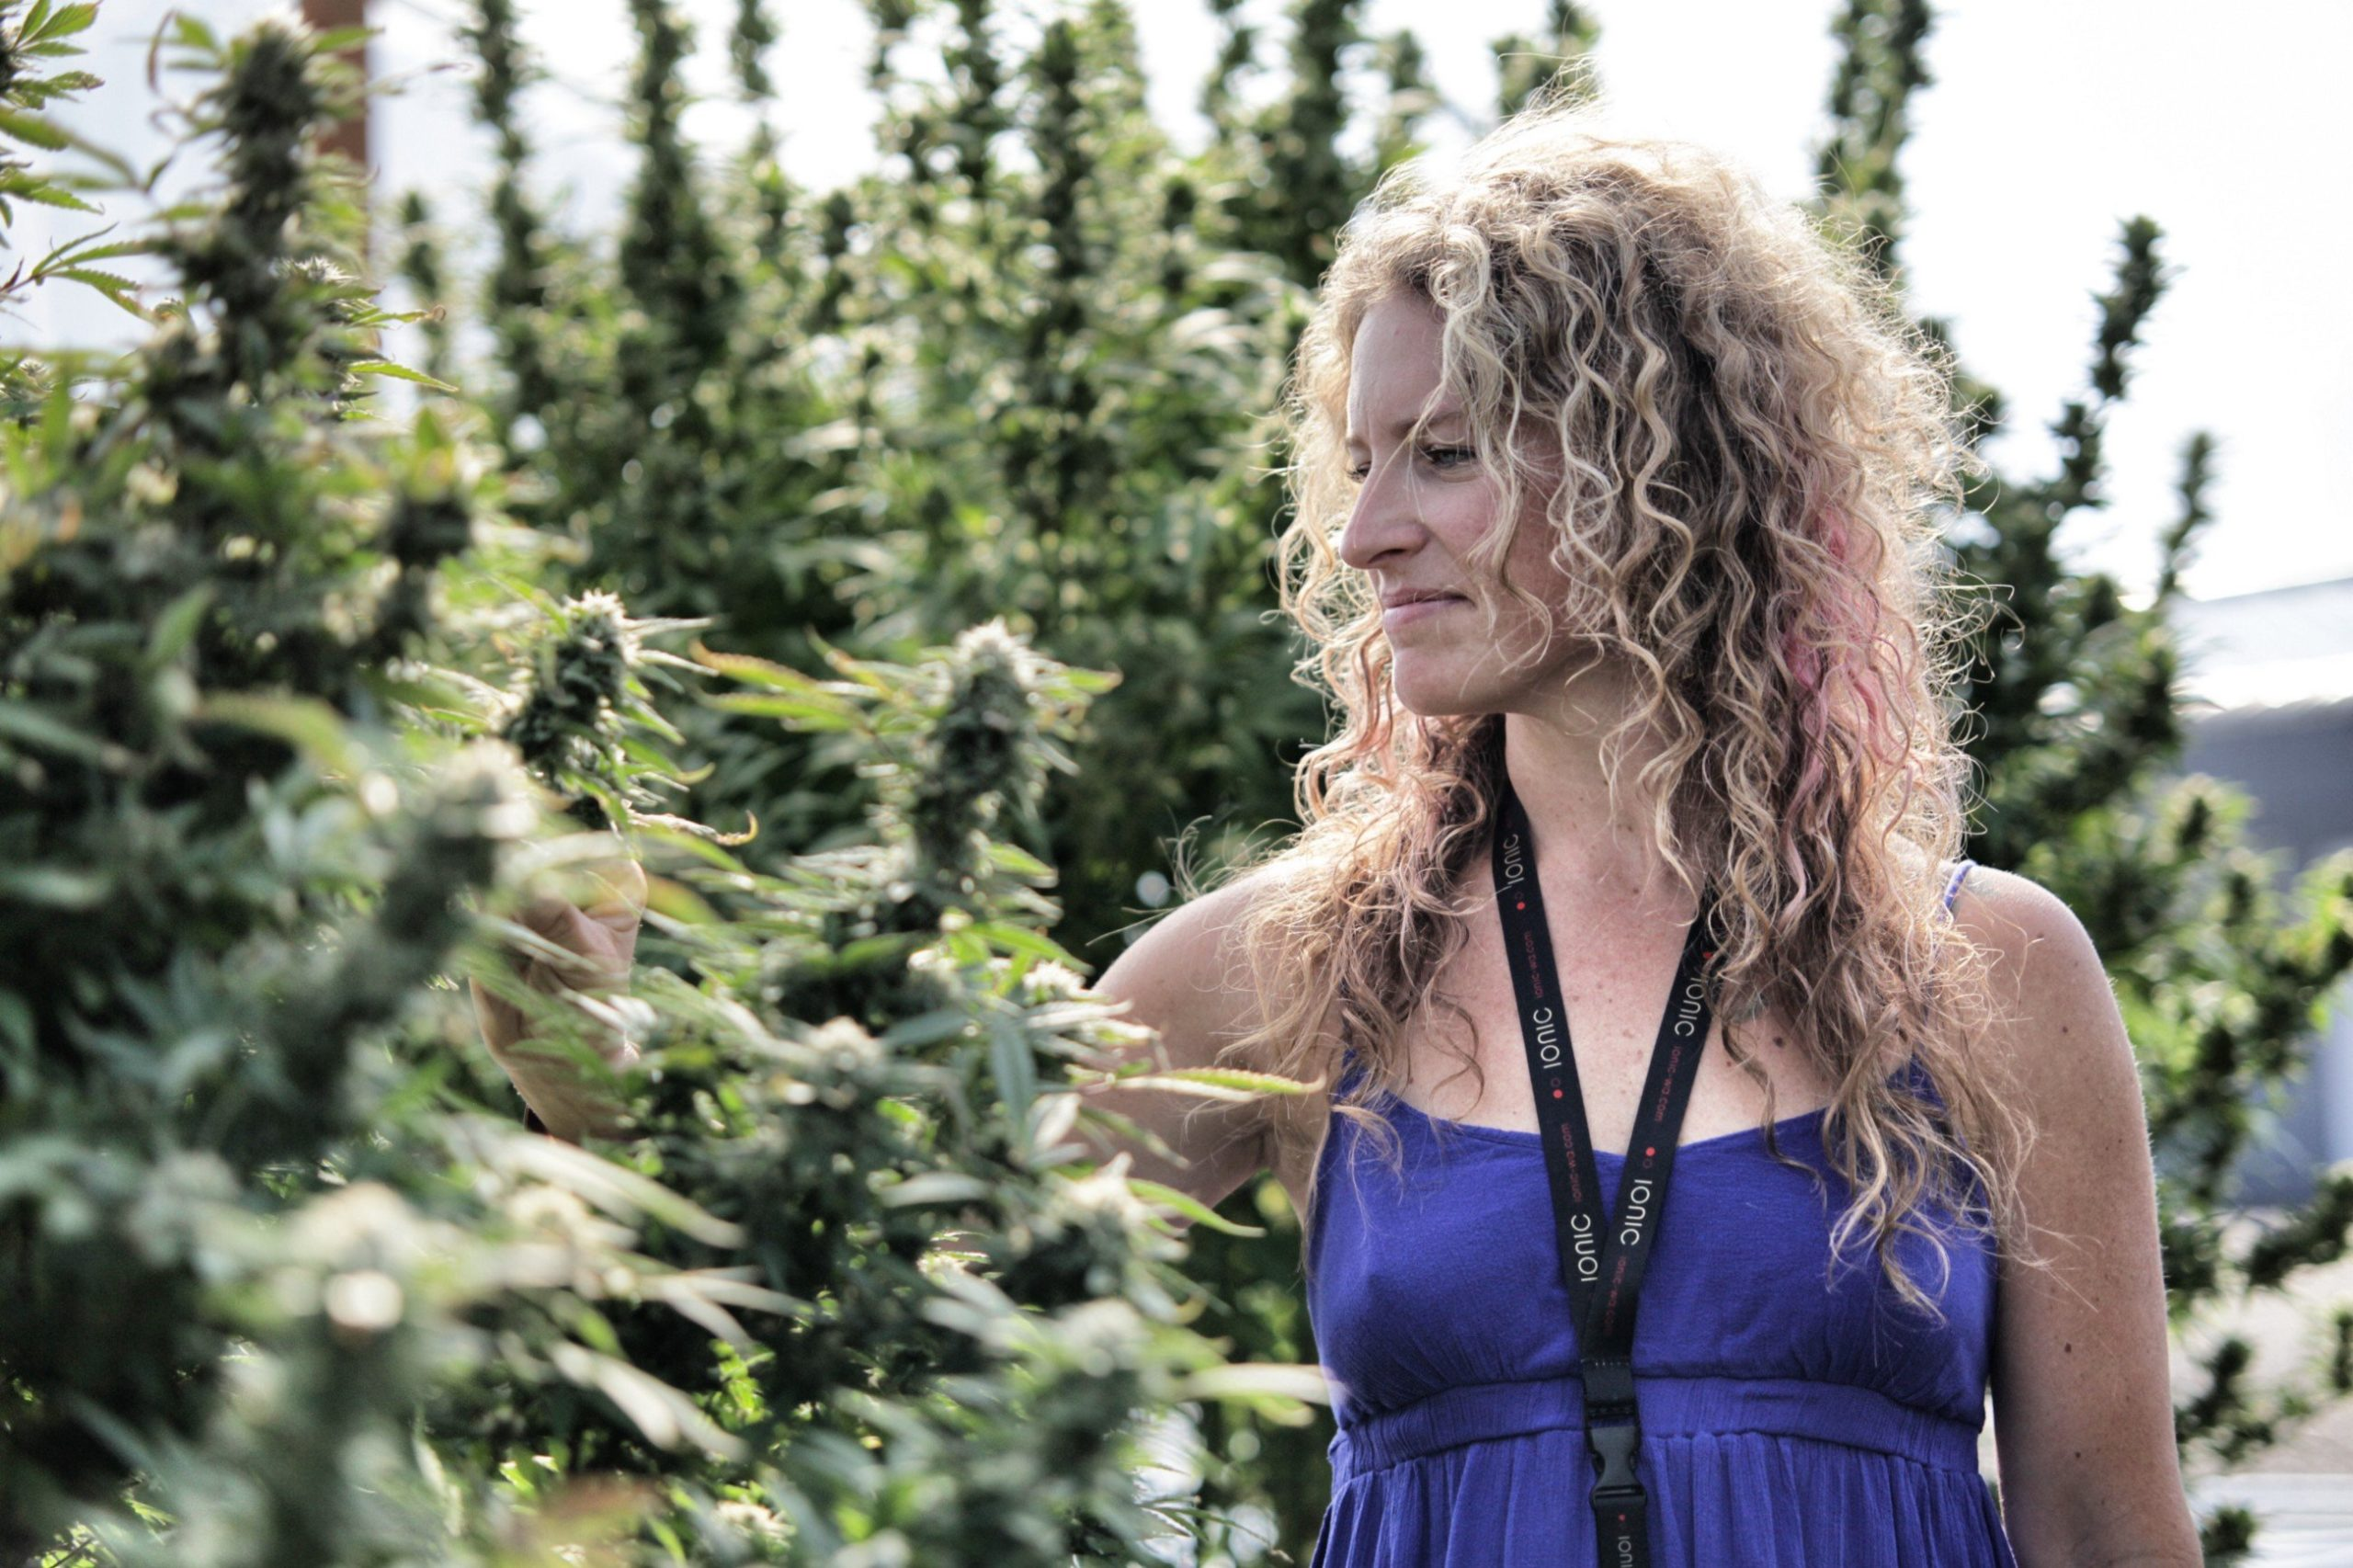 Cannabis and Parenting - Why We Need to Kill the Stigma